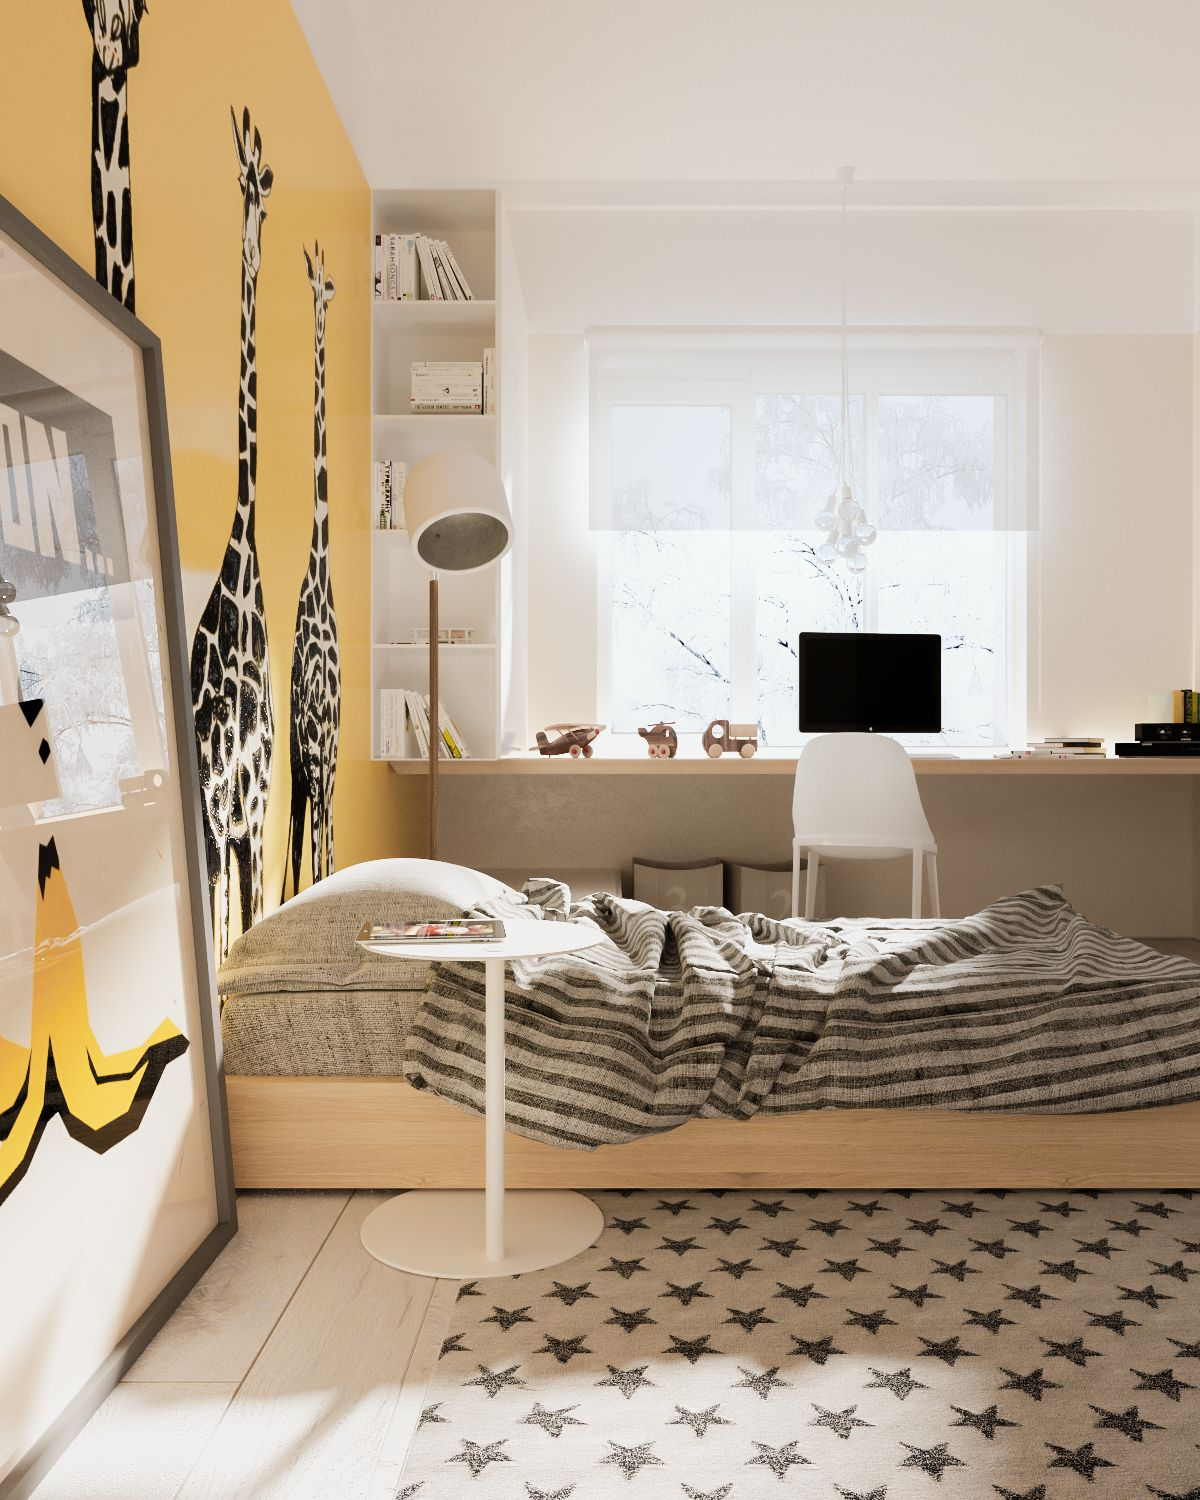 Modern interior style for kids bedroom